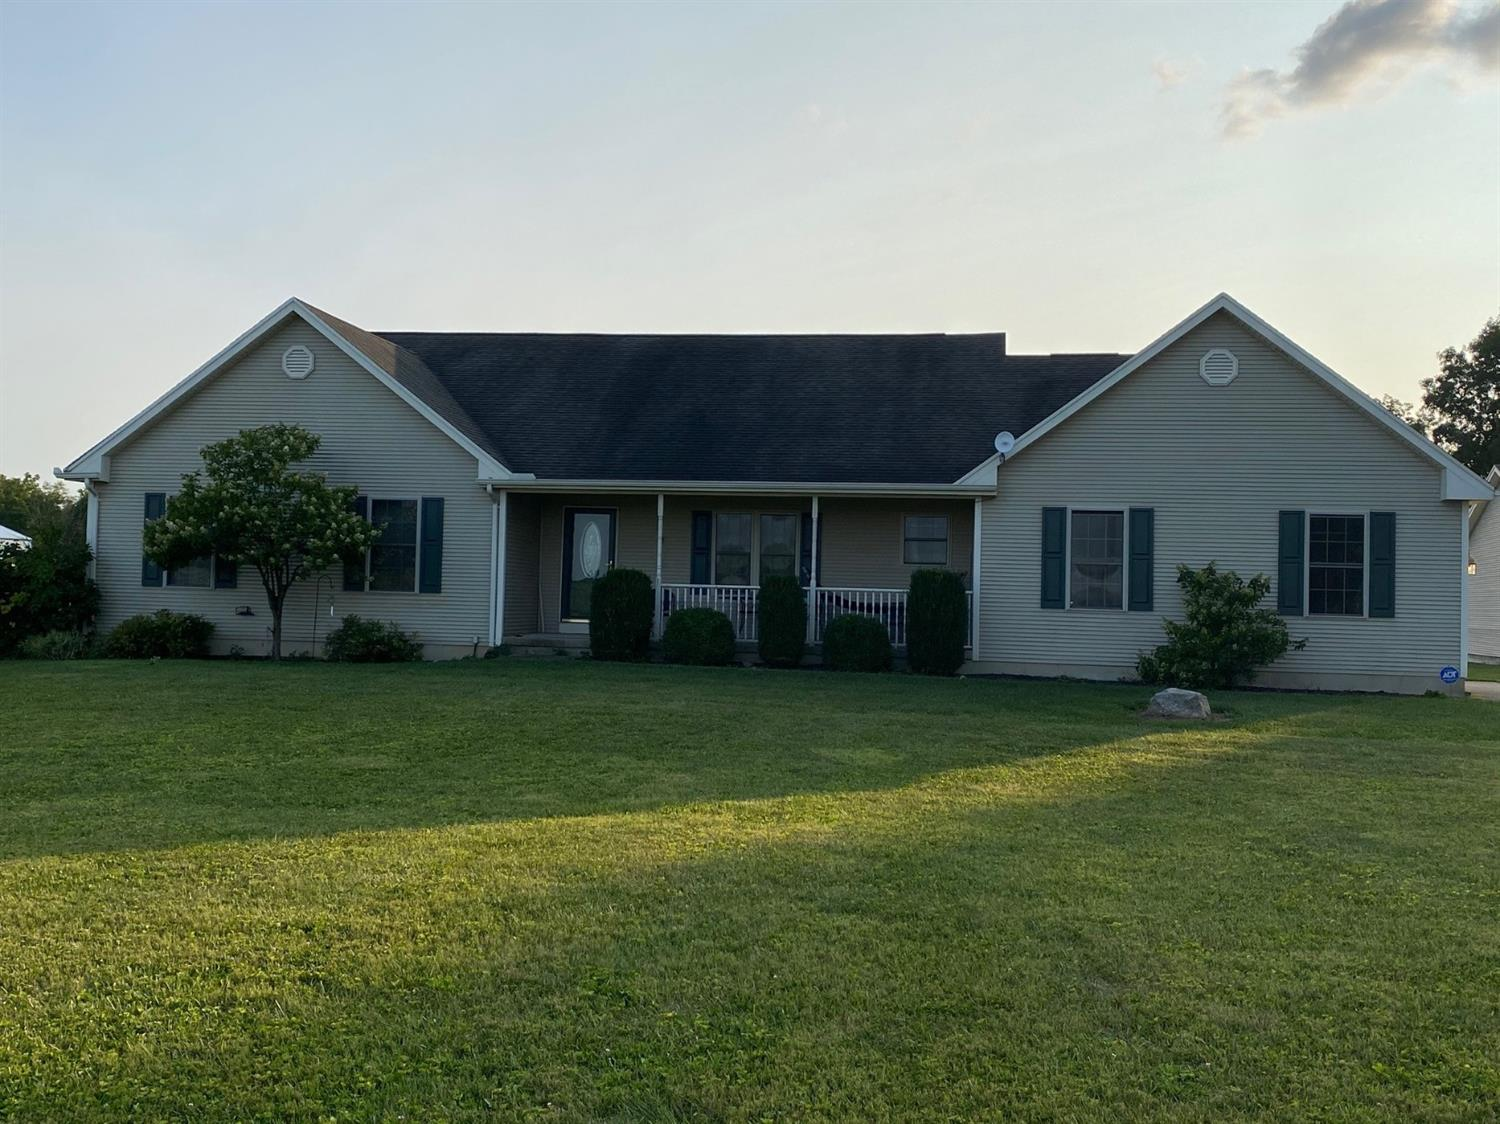 539 Starbuck Rd Union Twp. (Clinton), OH